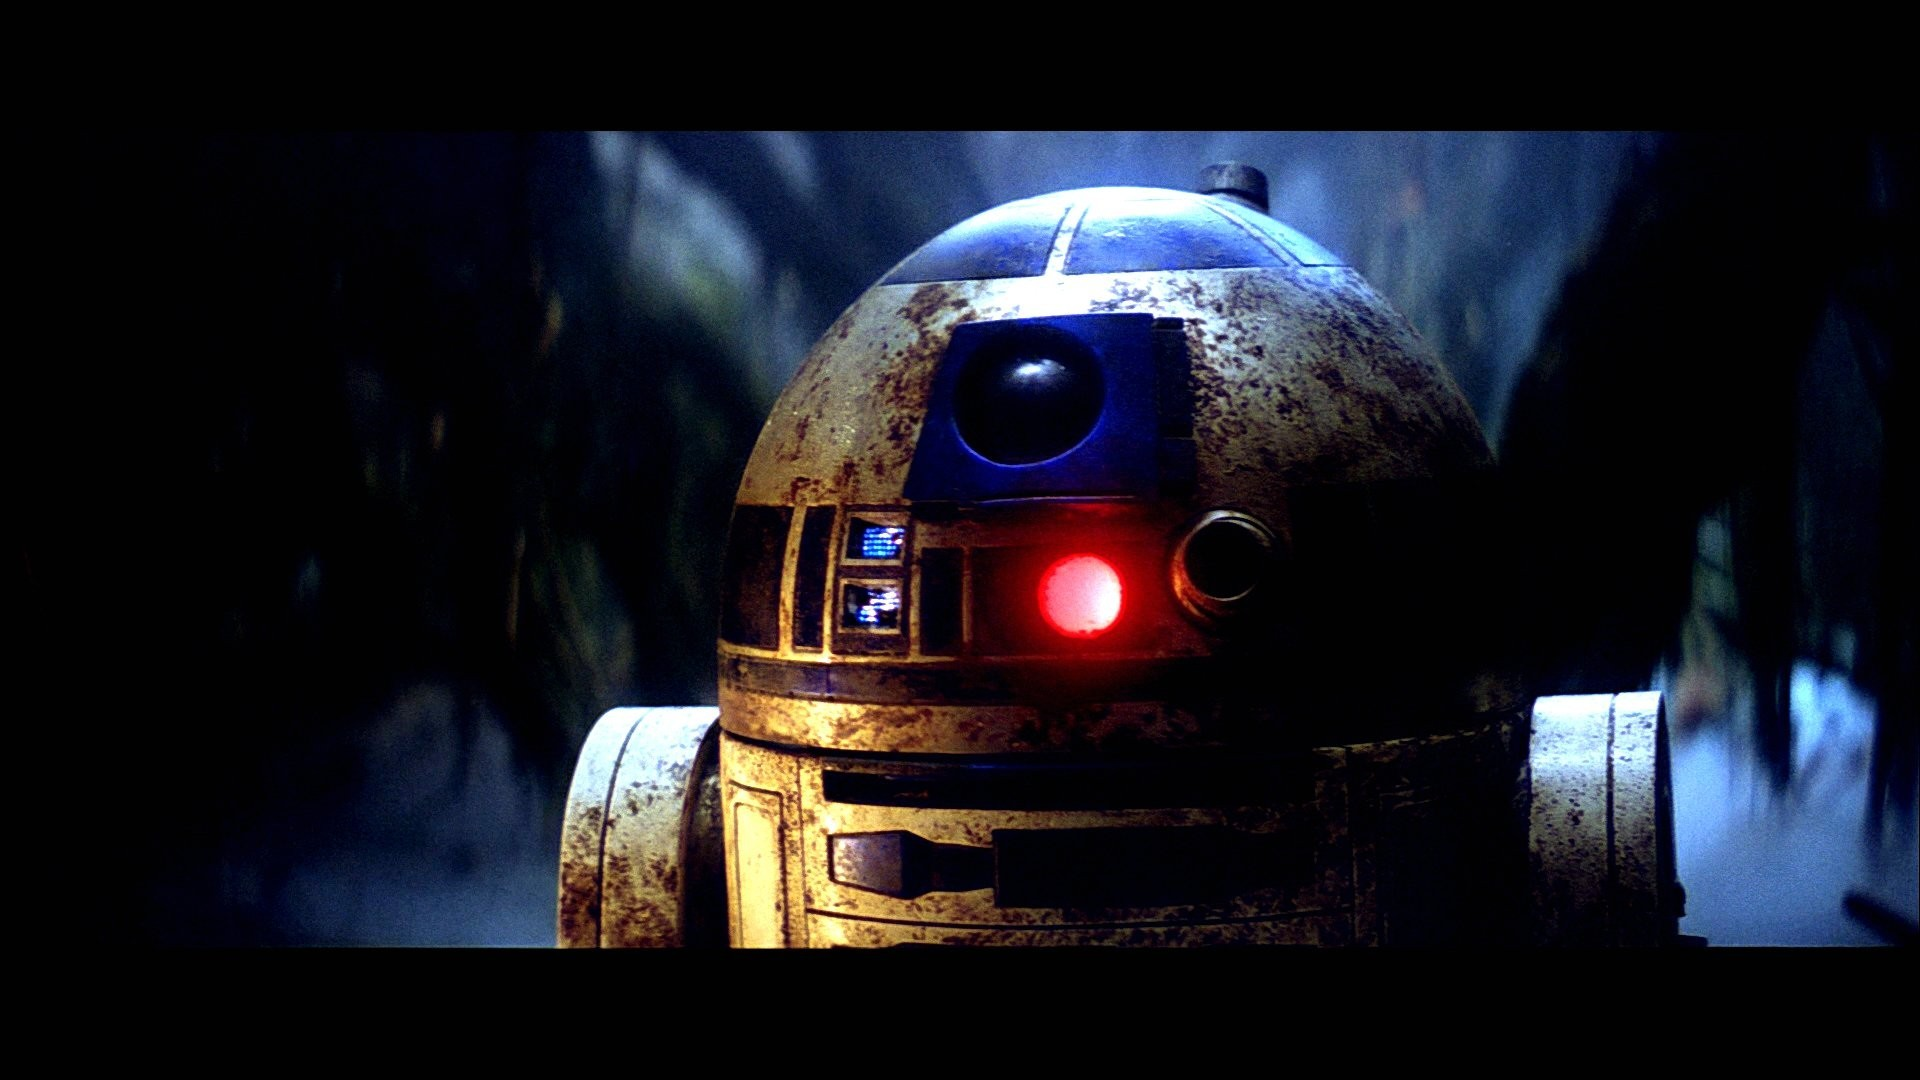 1920x1080 HD R2-D2 - Dagobah Swamp - Return of the Jedi